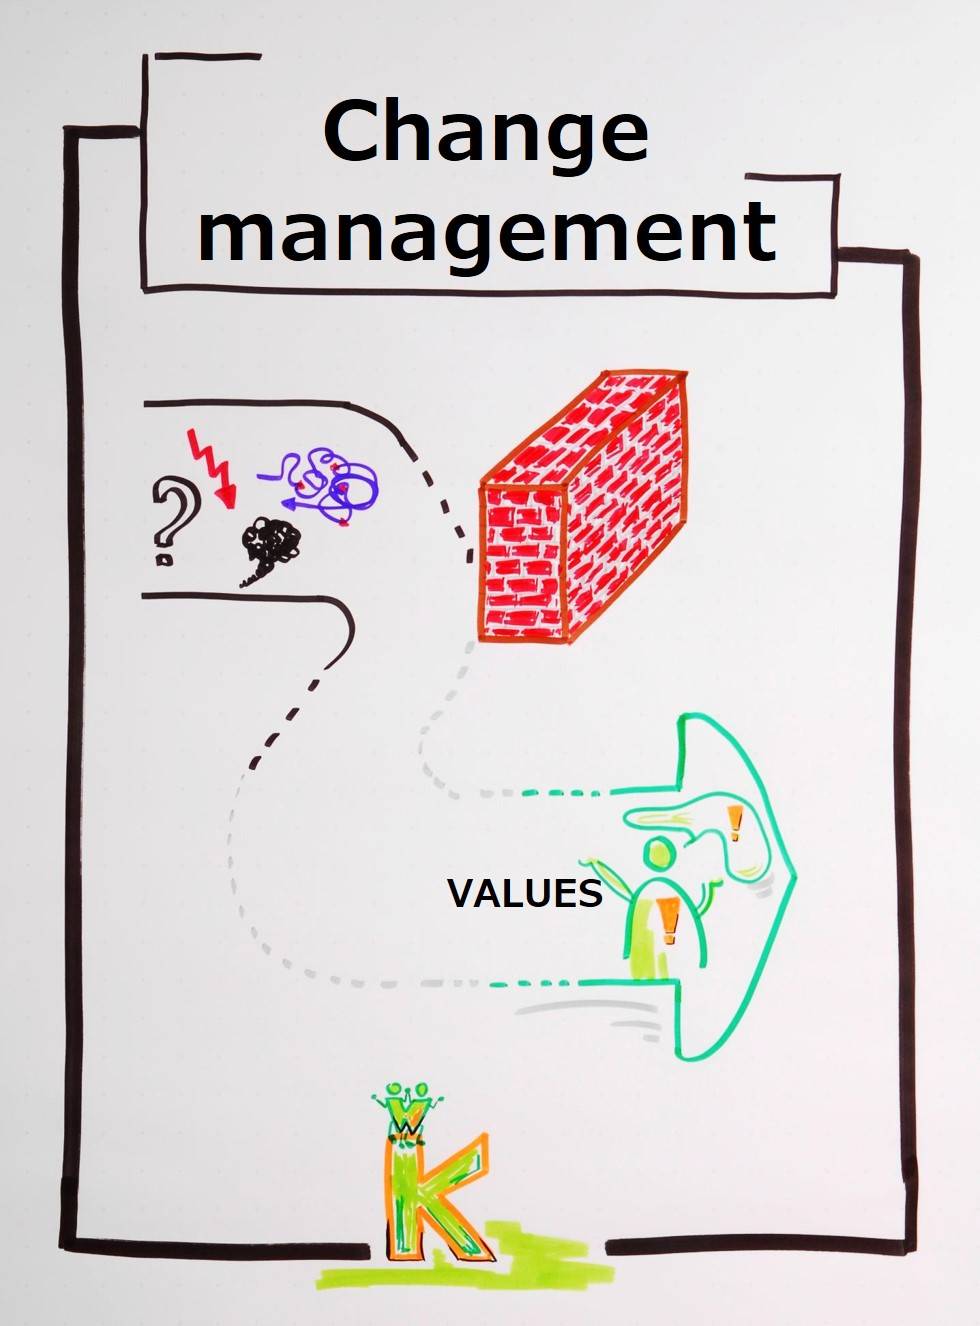 Change management in order to get a grip on new things and not have to chase after them